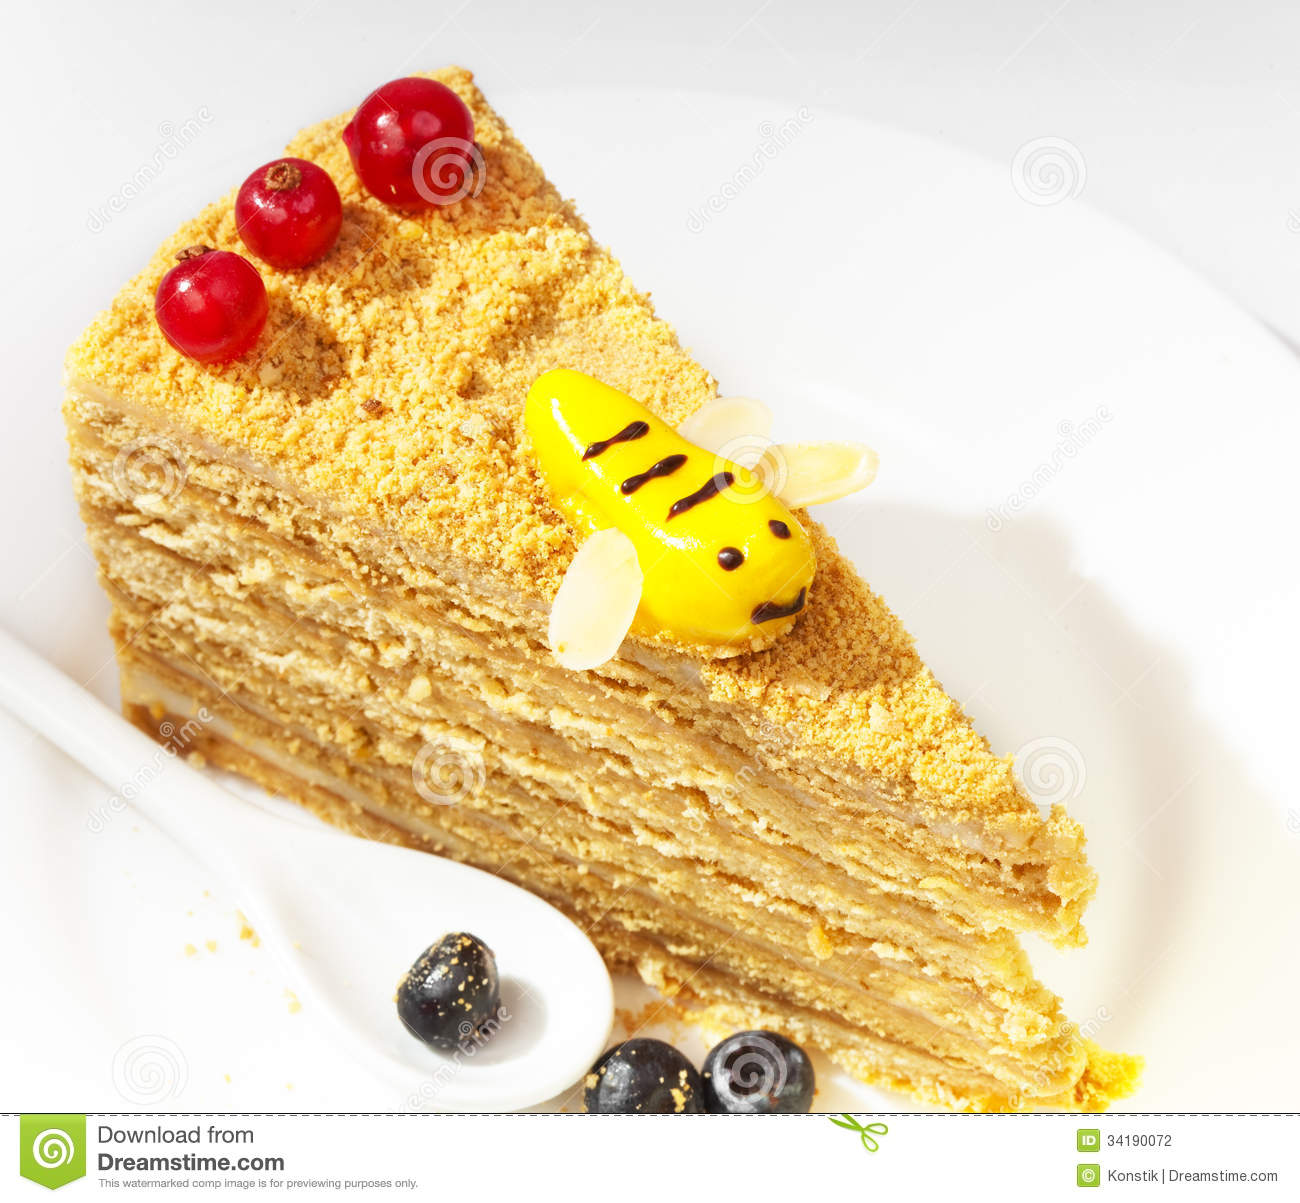 Clipart Of Honey Cake : Piece Of The Honey Cake Stock Photography - Image: 34190072